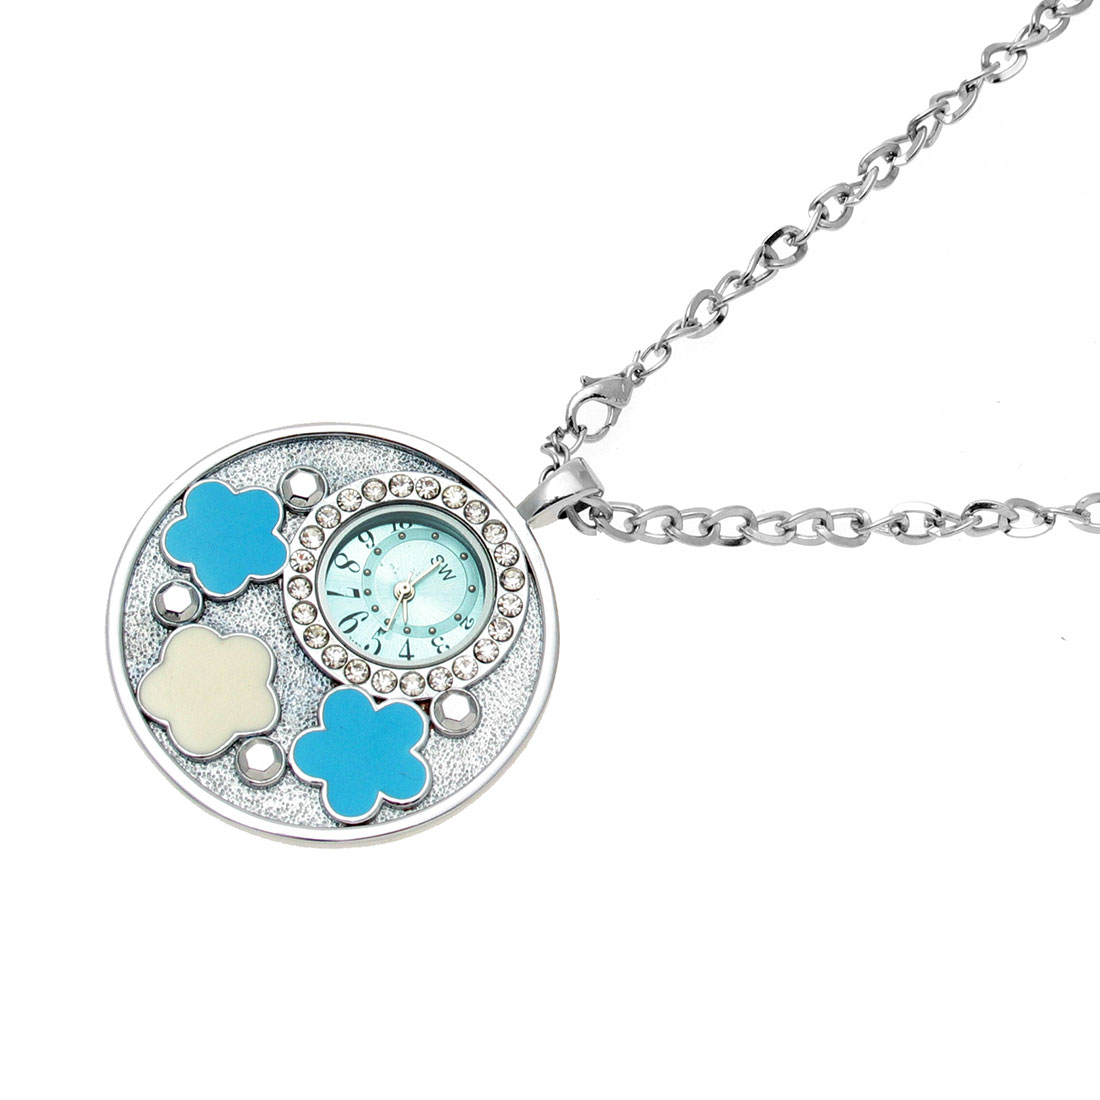 Fashion Jewelry Necklace Stainless Quartz Clock Watch w/Flower